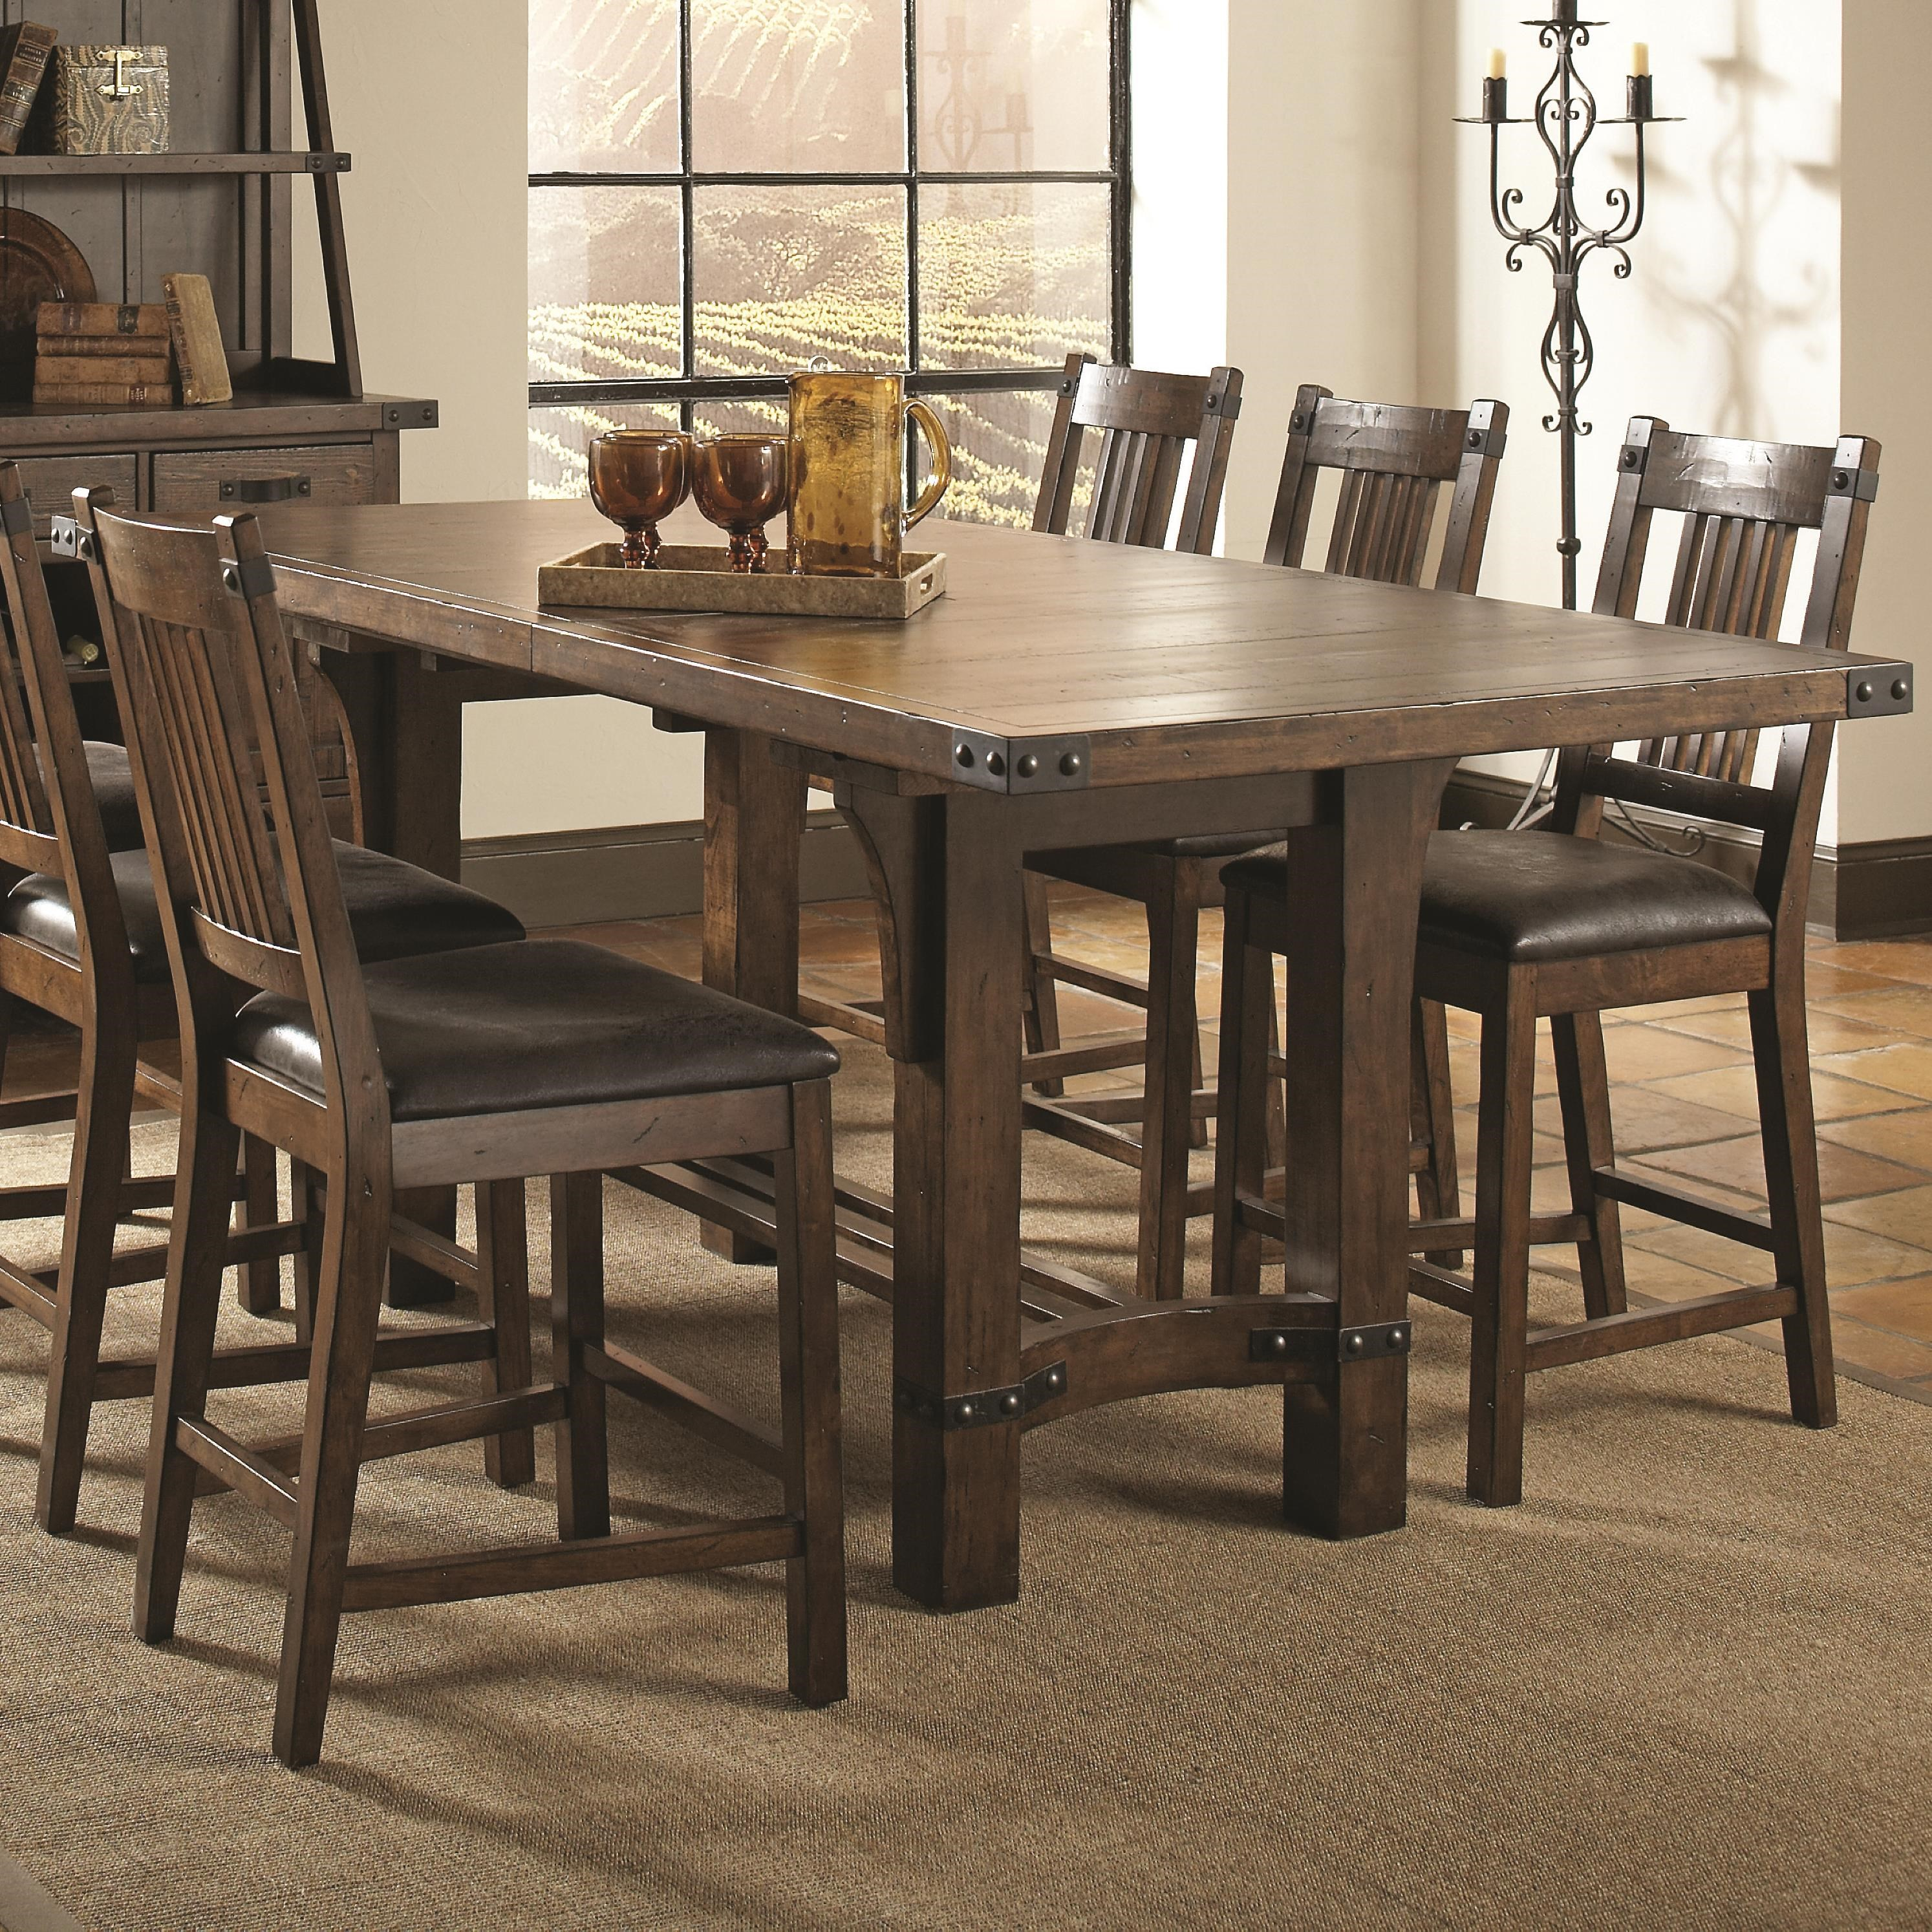 Coaster Padima Rustic Rough-Sawn Counter Height Table with